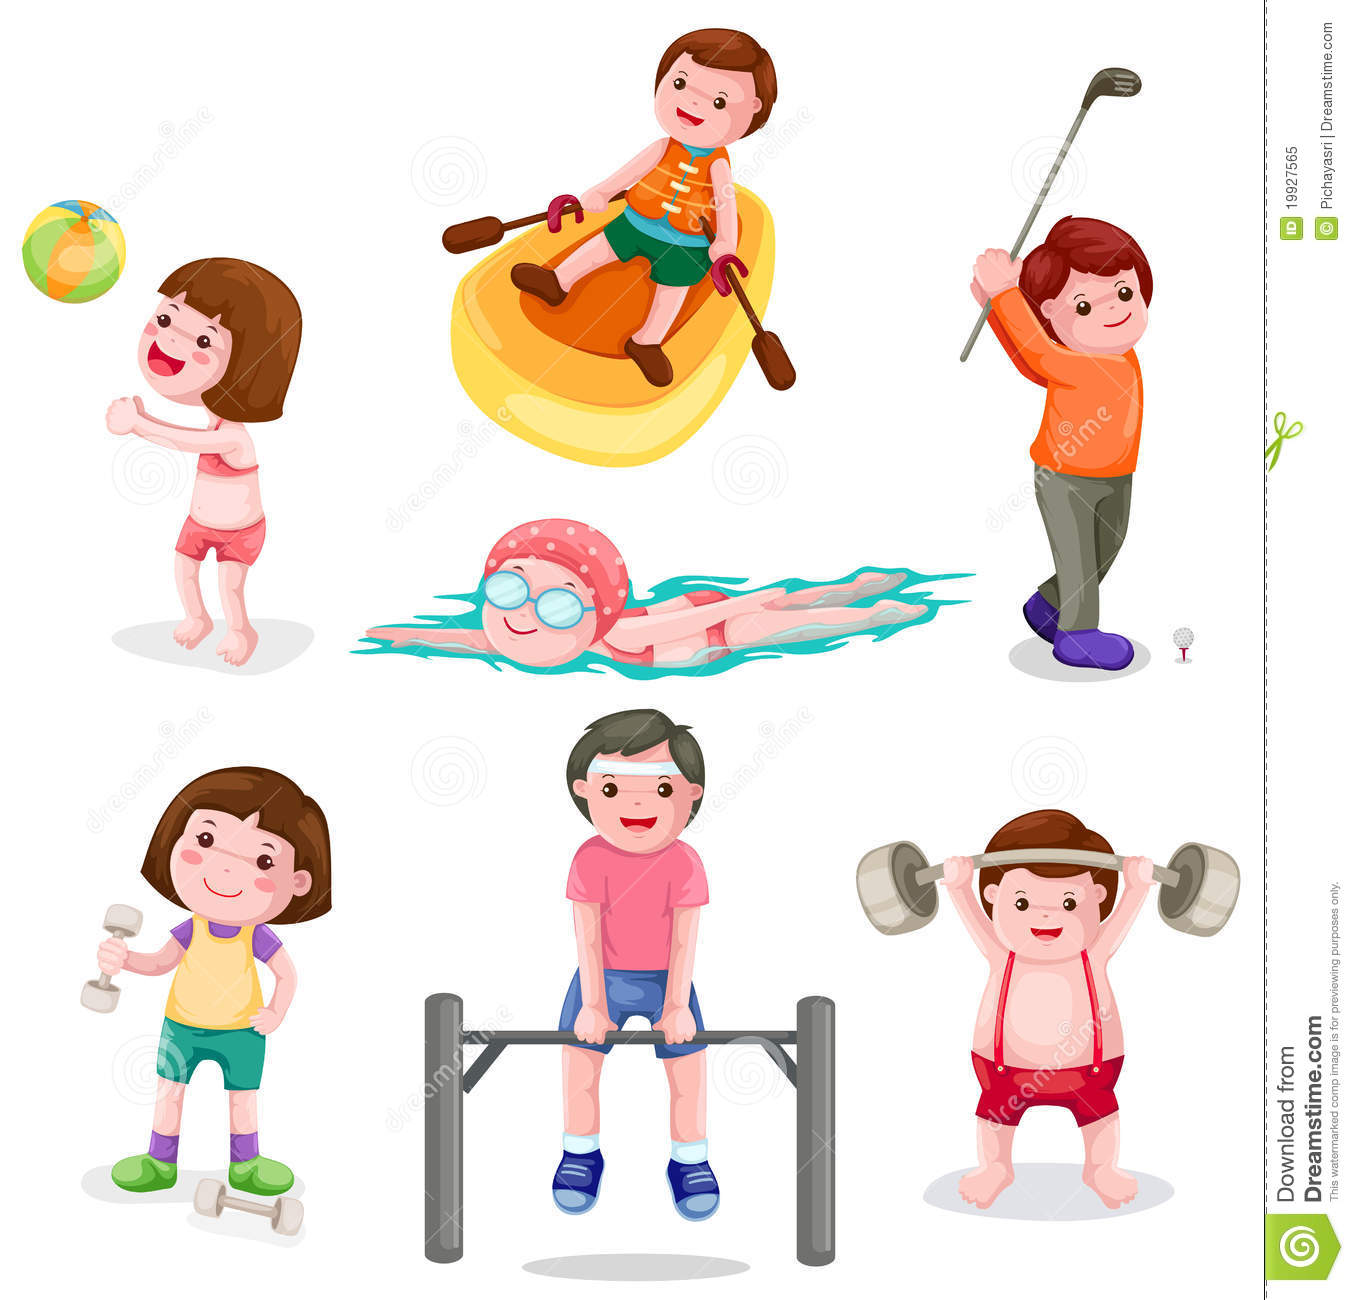 Activities clipart child activity. Physical for children